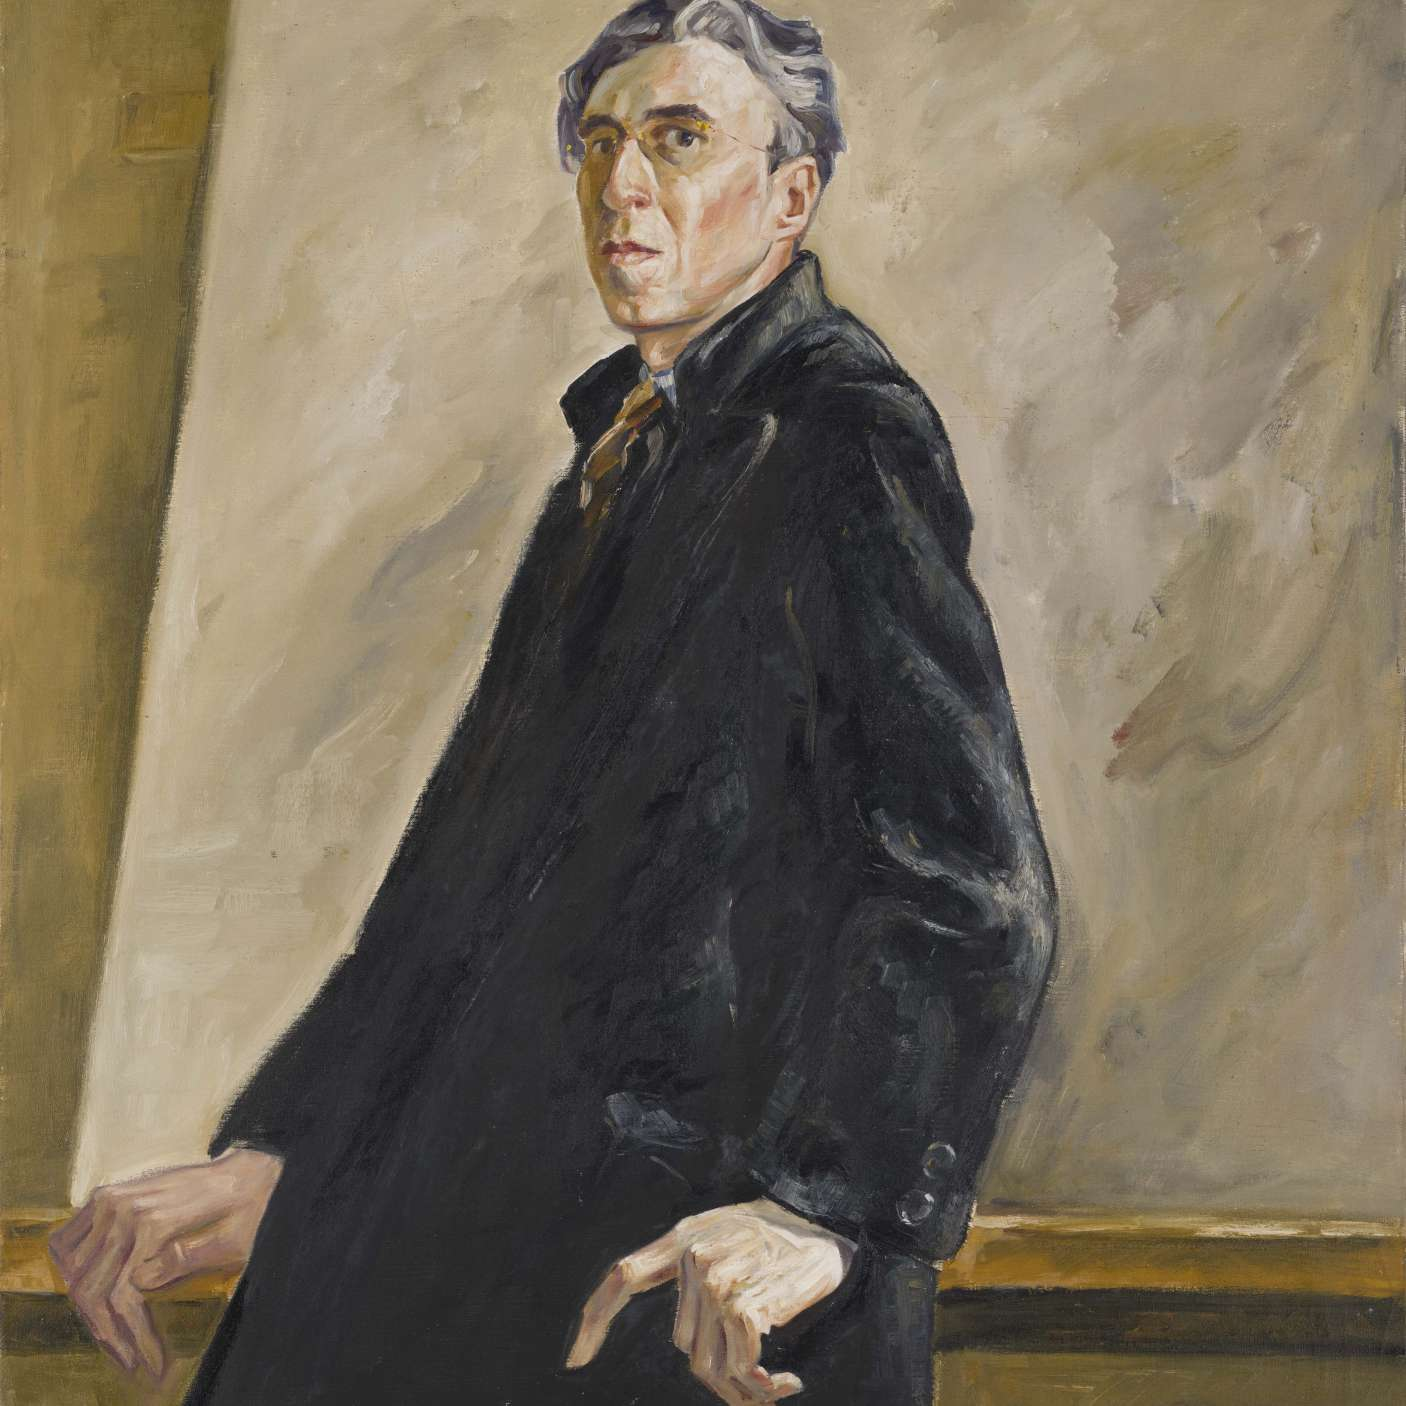 Biography of Clyfford Still, Abstract Expressionist Painter